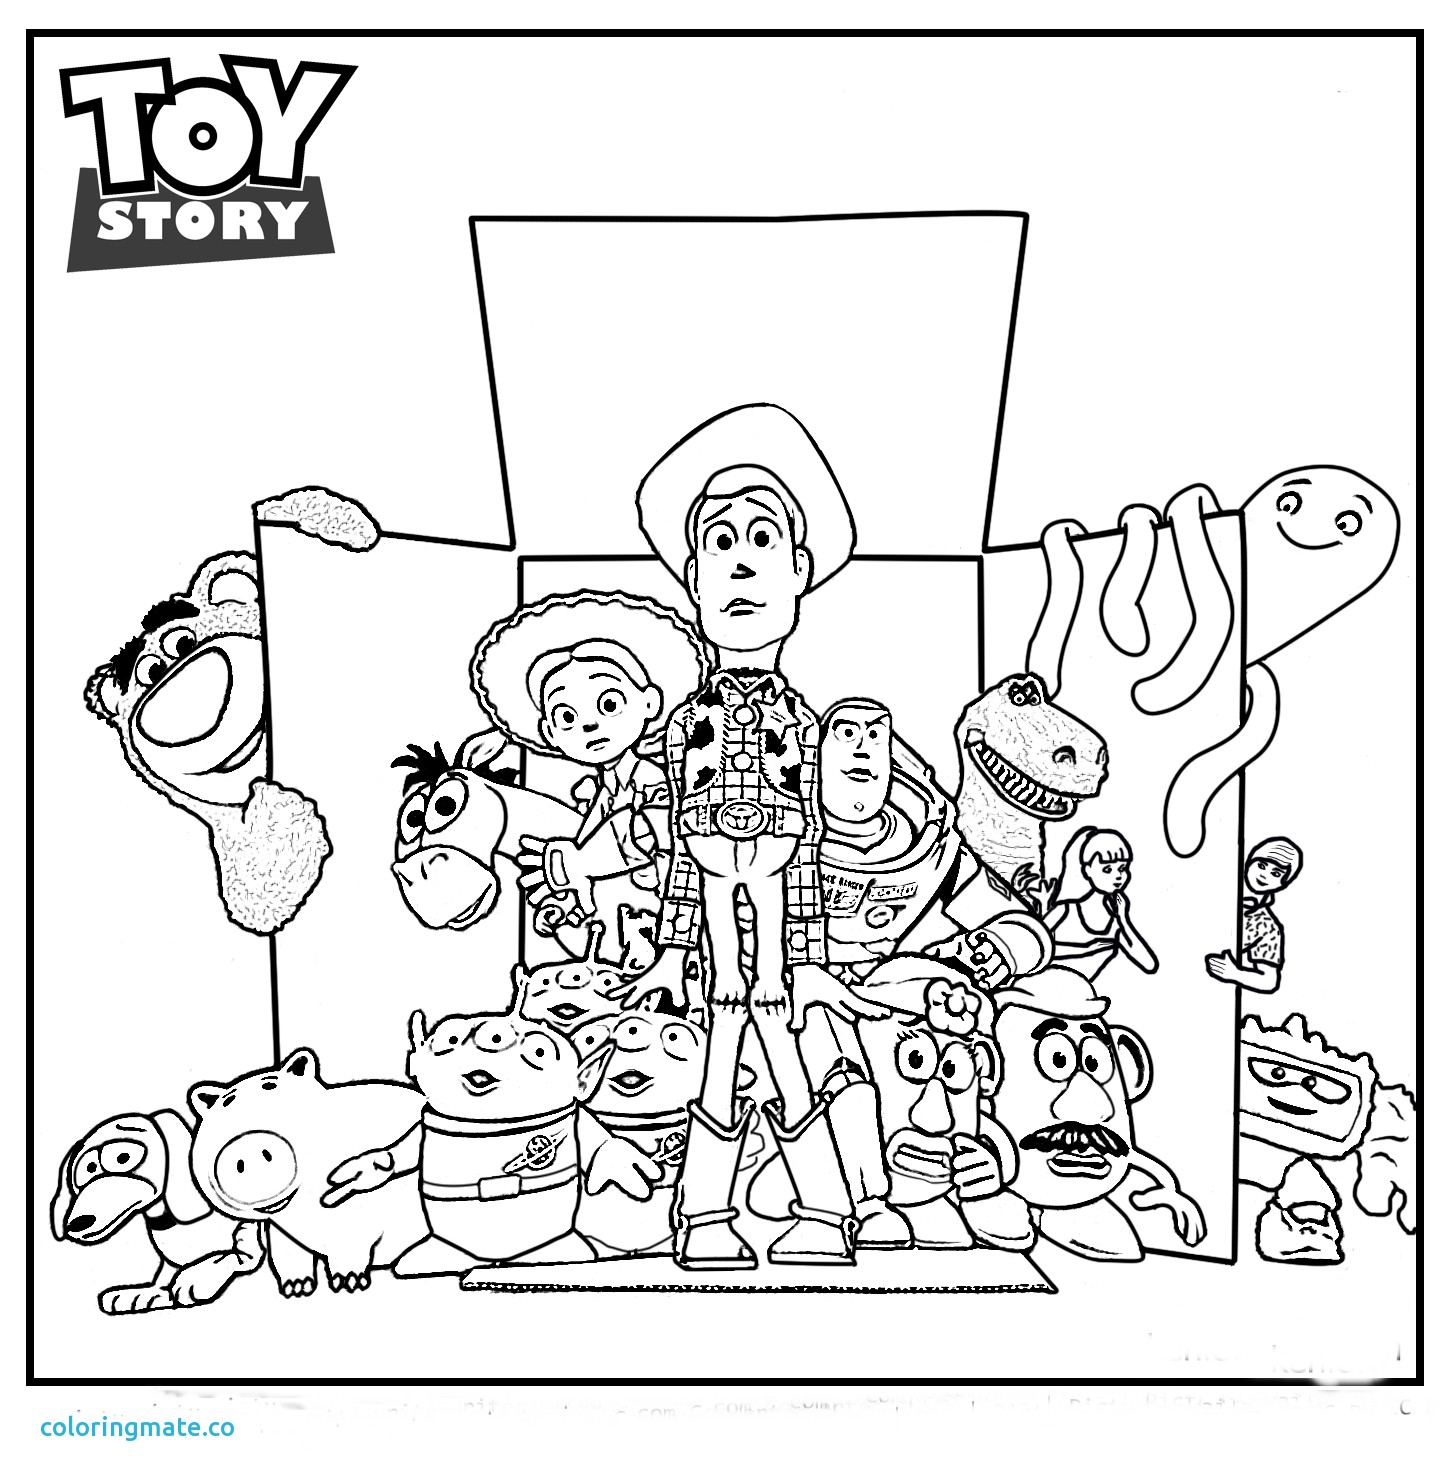 Toy Story 3 Drawing at GetDrawings.com | Free for personal use Toy ...